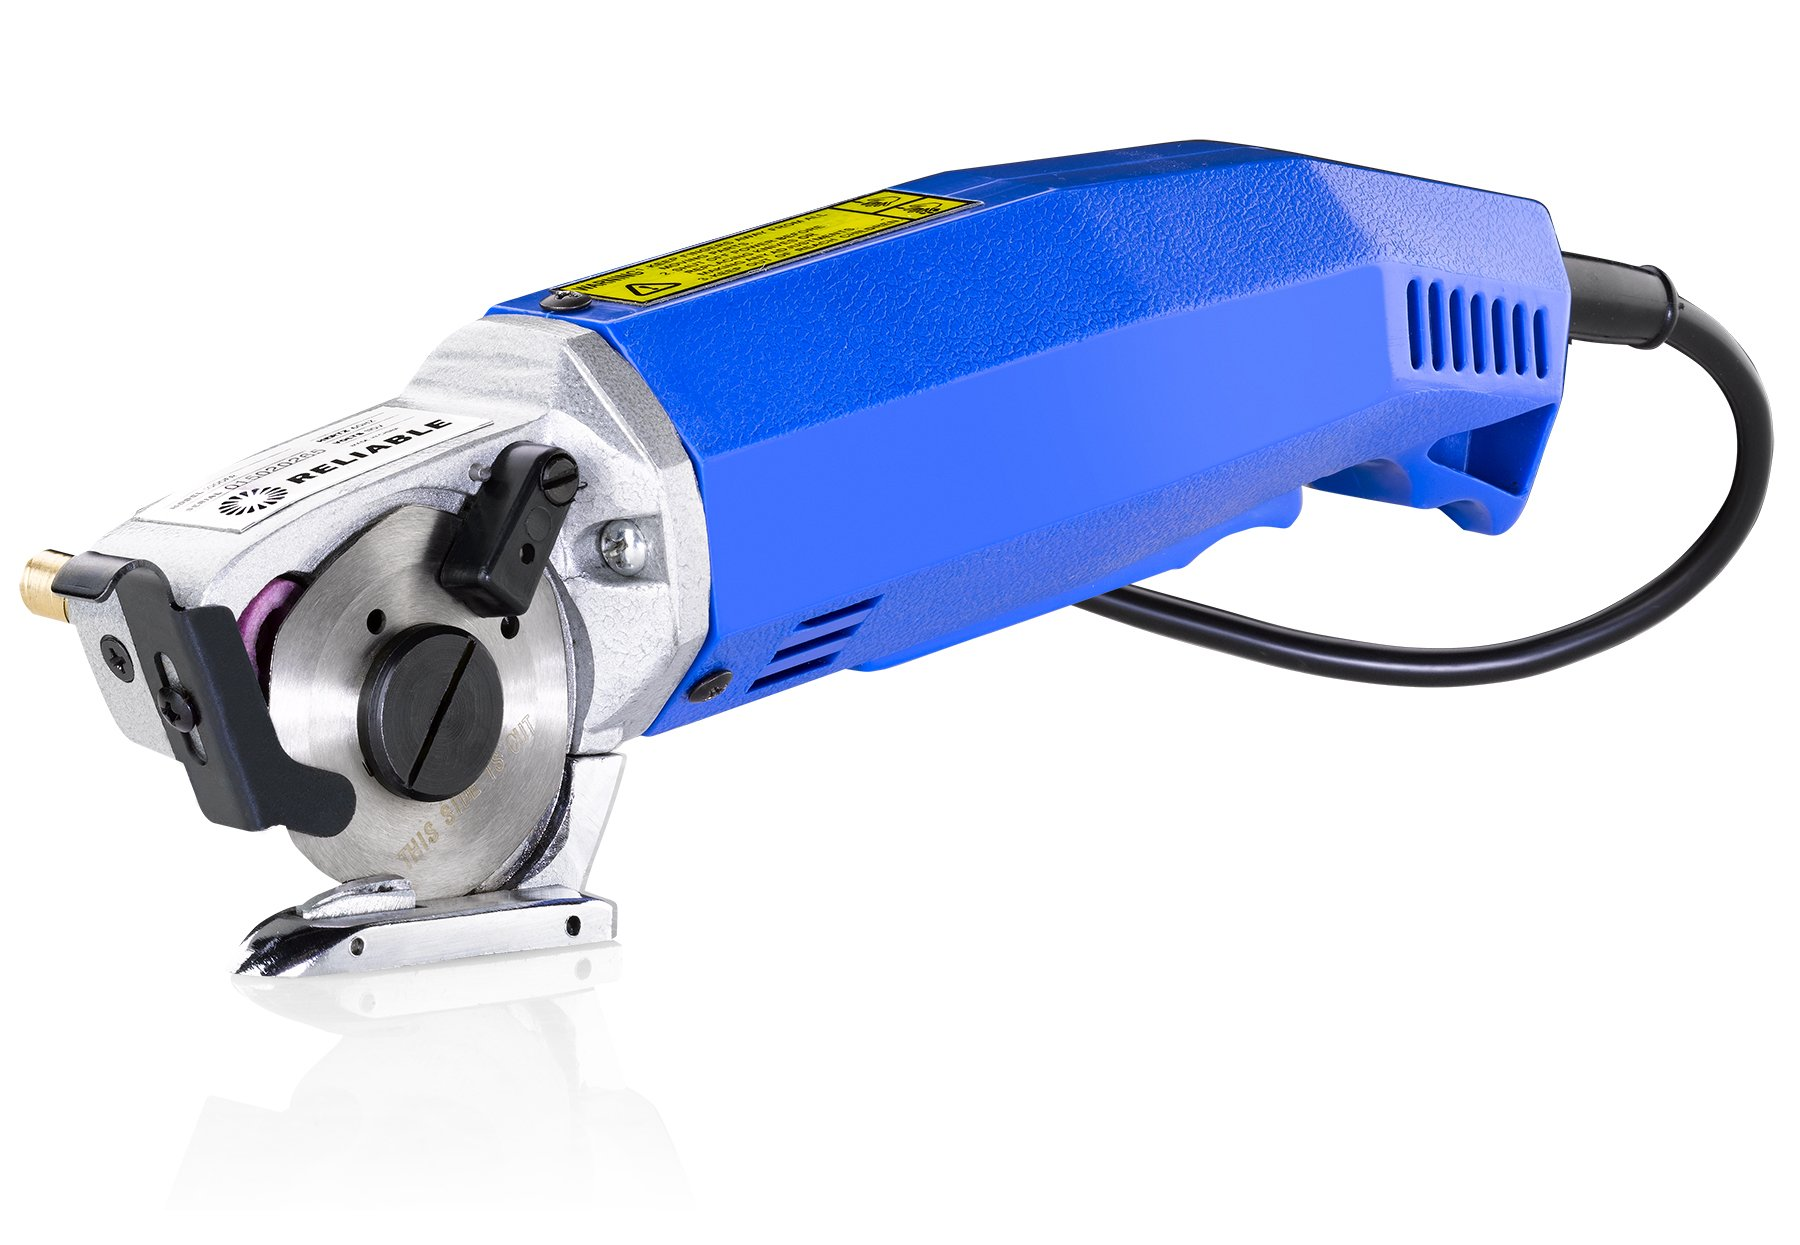 Reliable 1000FR Hand-Held Fabric Cutting Machine With Round Knife Cutting Machine 2 inch, 1/4 inch cutting capacity, Cast Aluminium Head, High Torque Motor, Built-In Sharpener and Knife Guard by Reliable